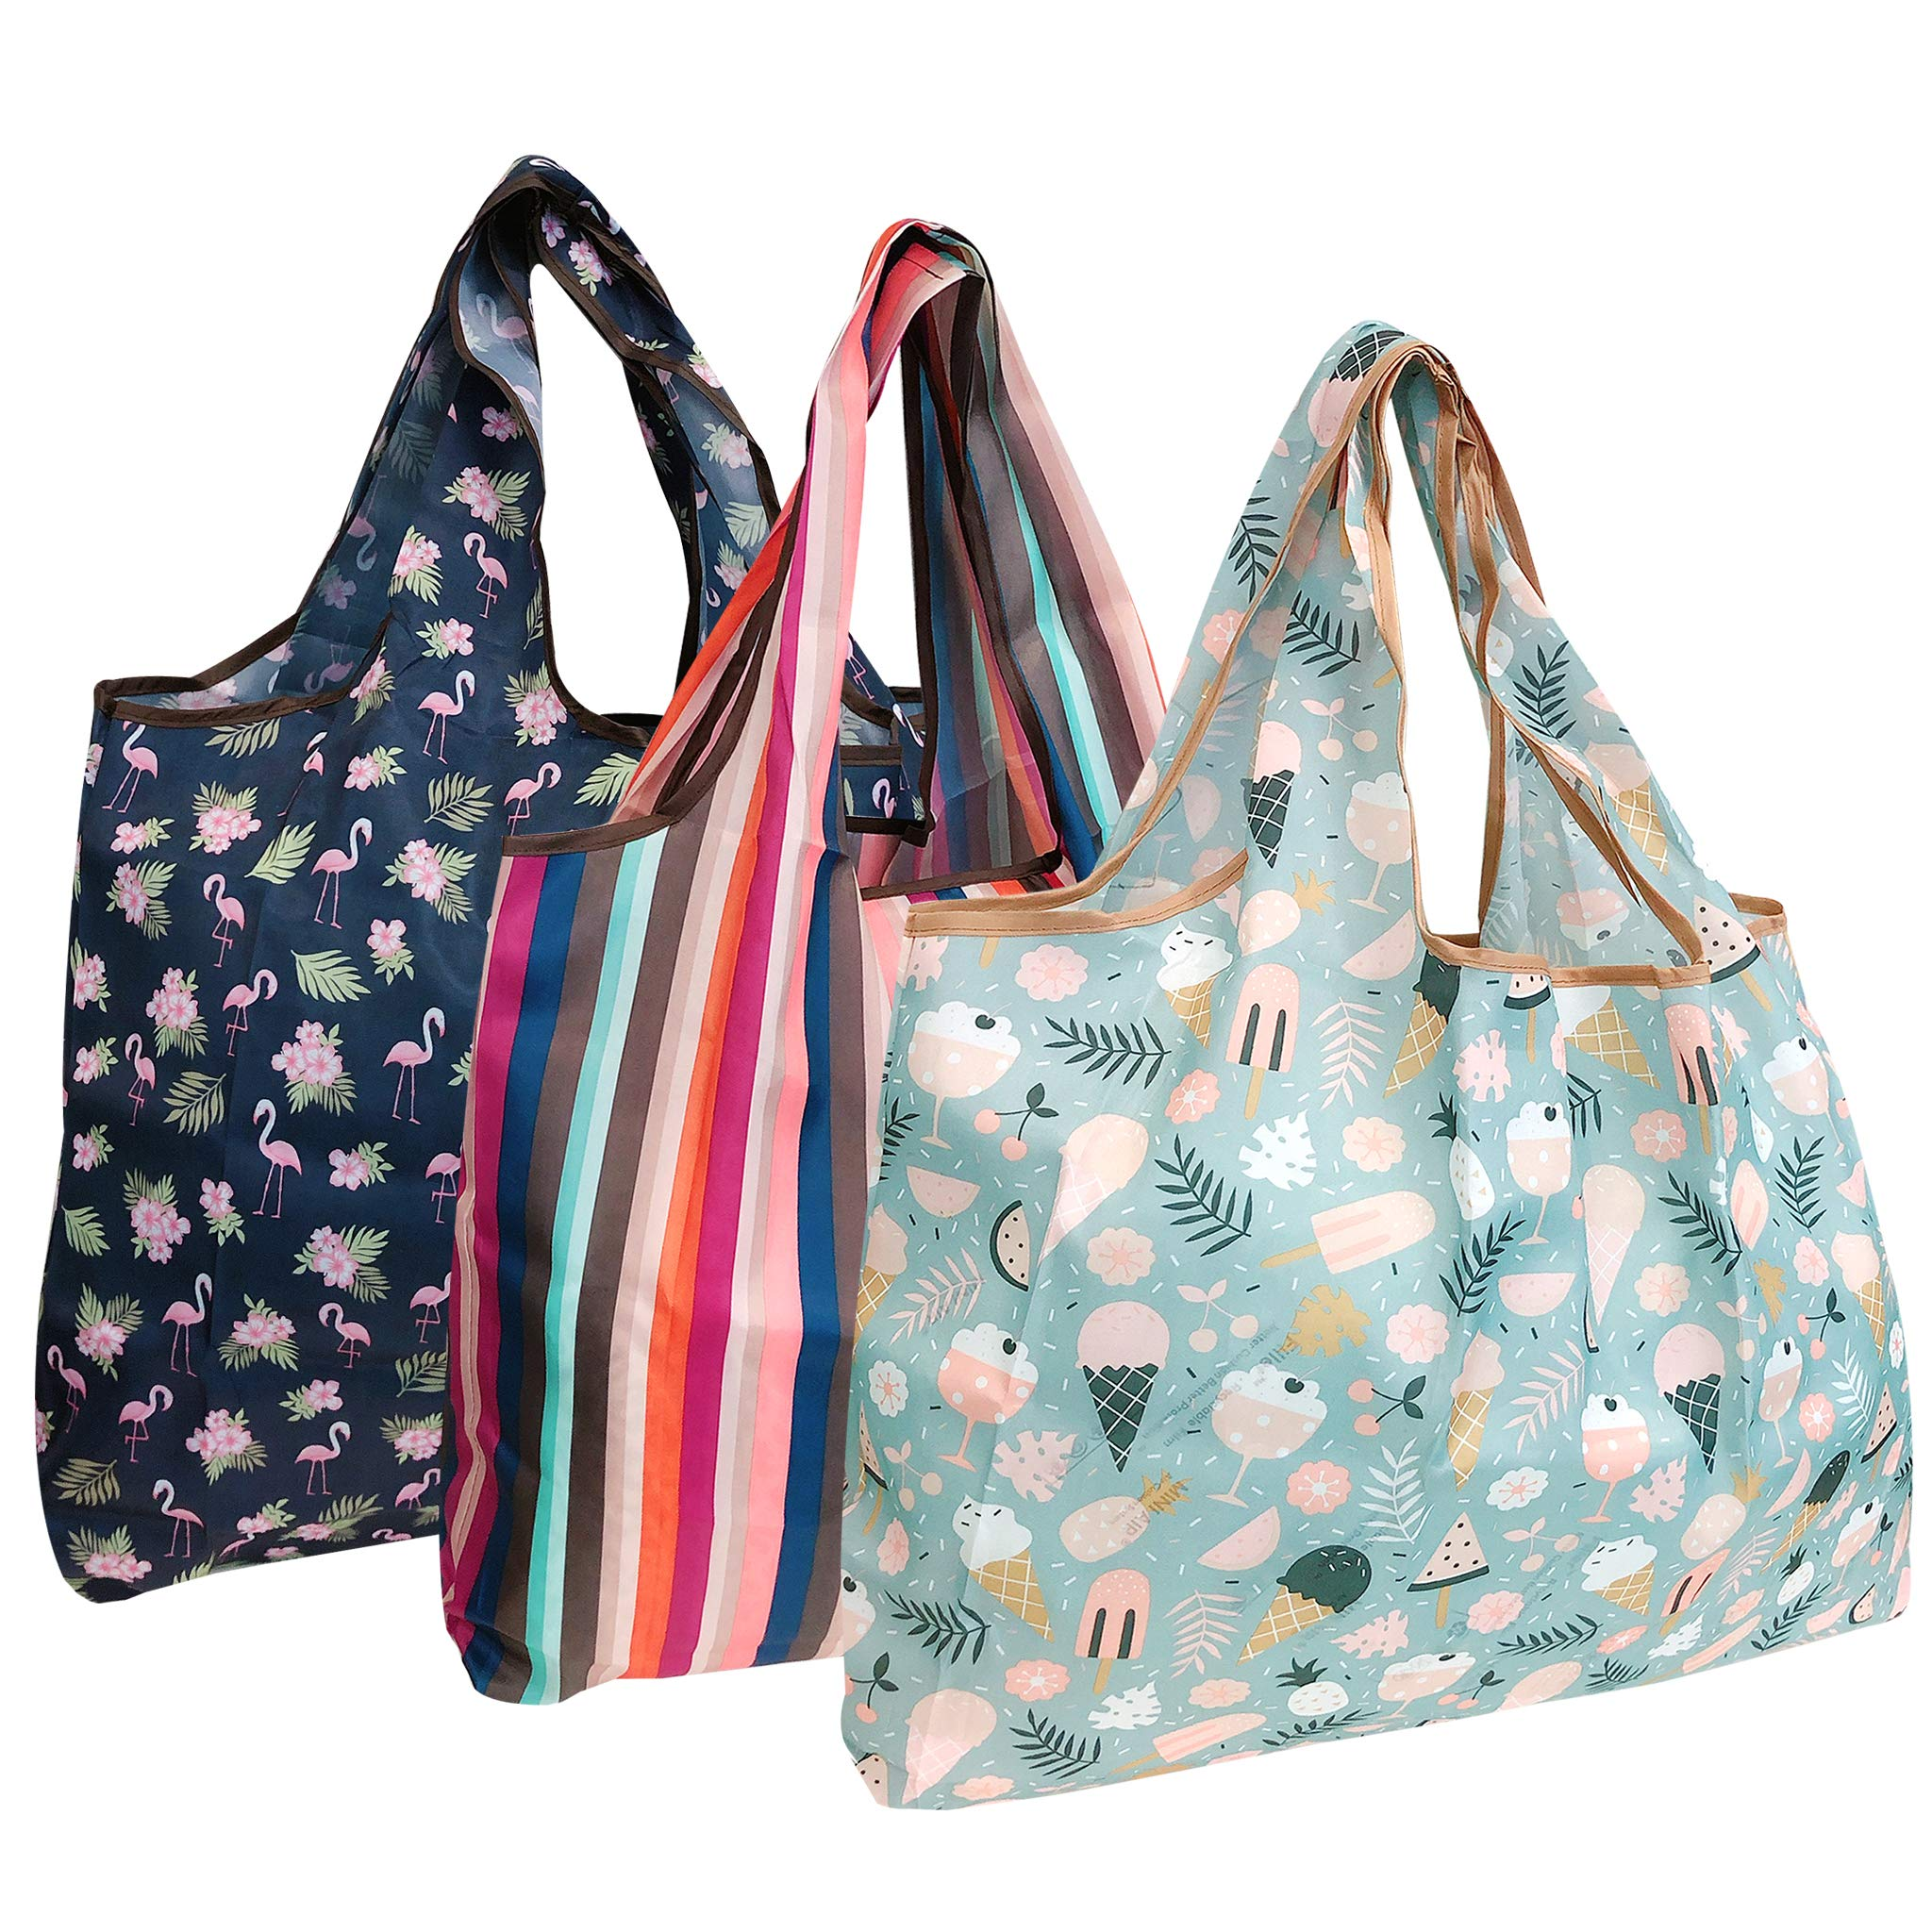 Wrapables A72040c Eco-Friendly Large Reusable Shopping Bags, Foldable, Lightweight, Durable, Summer Fun